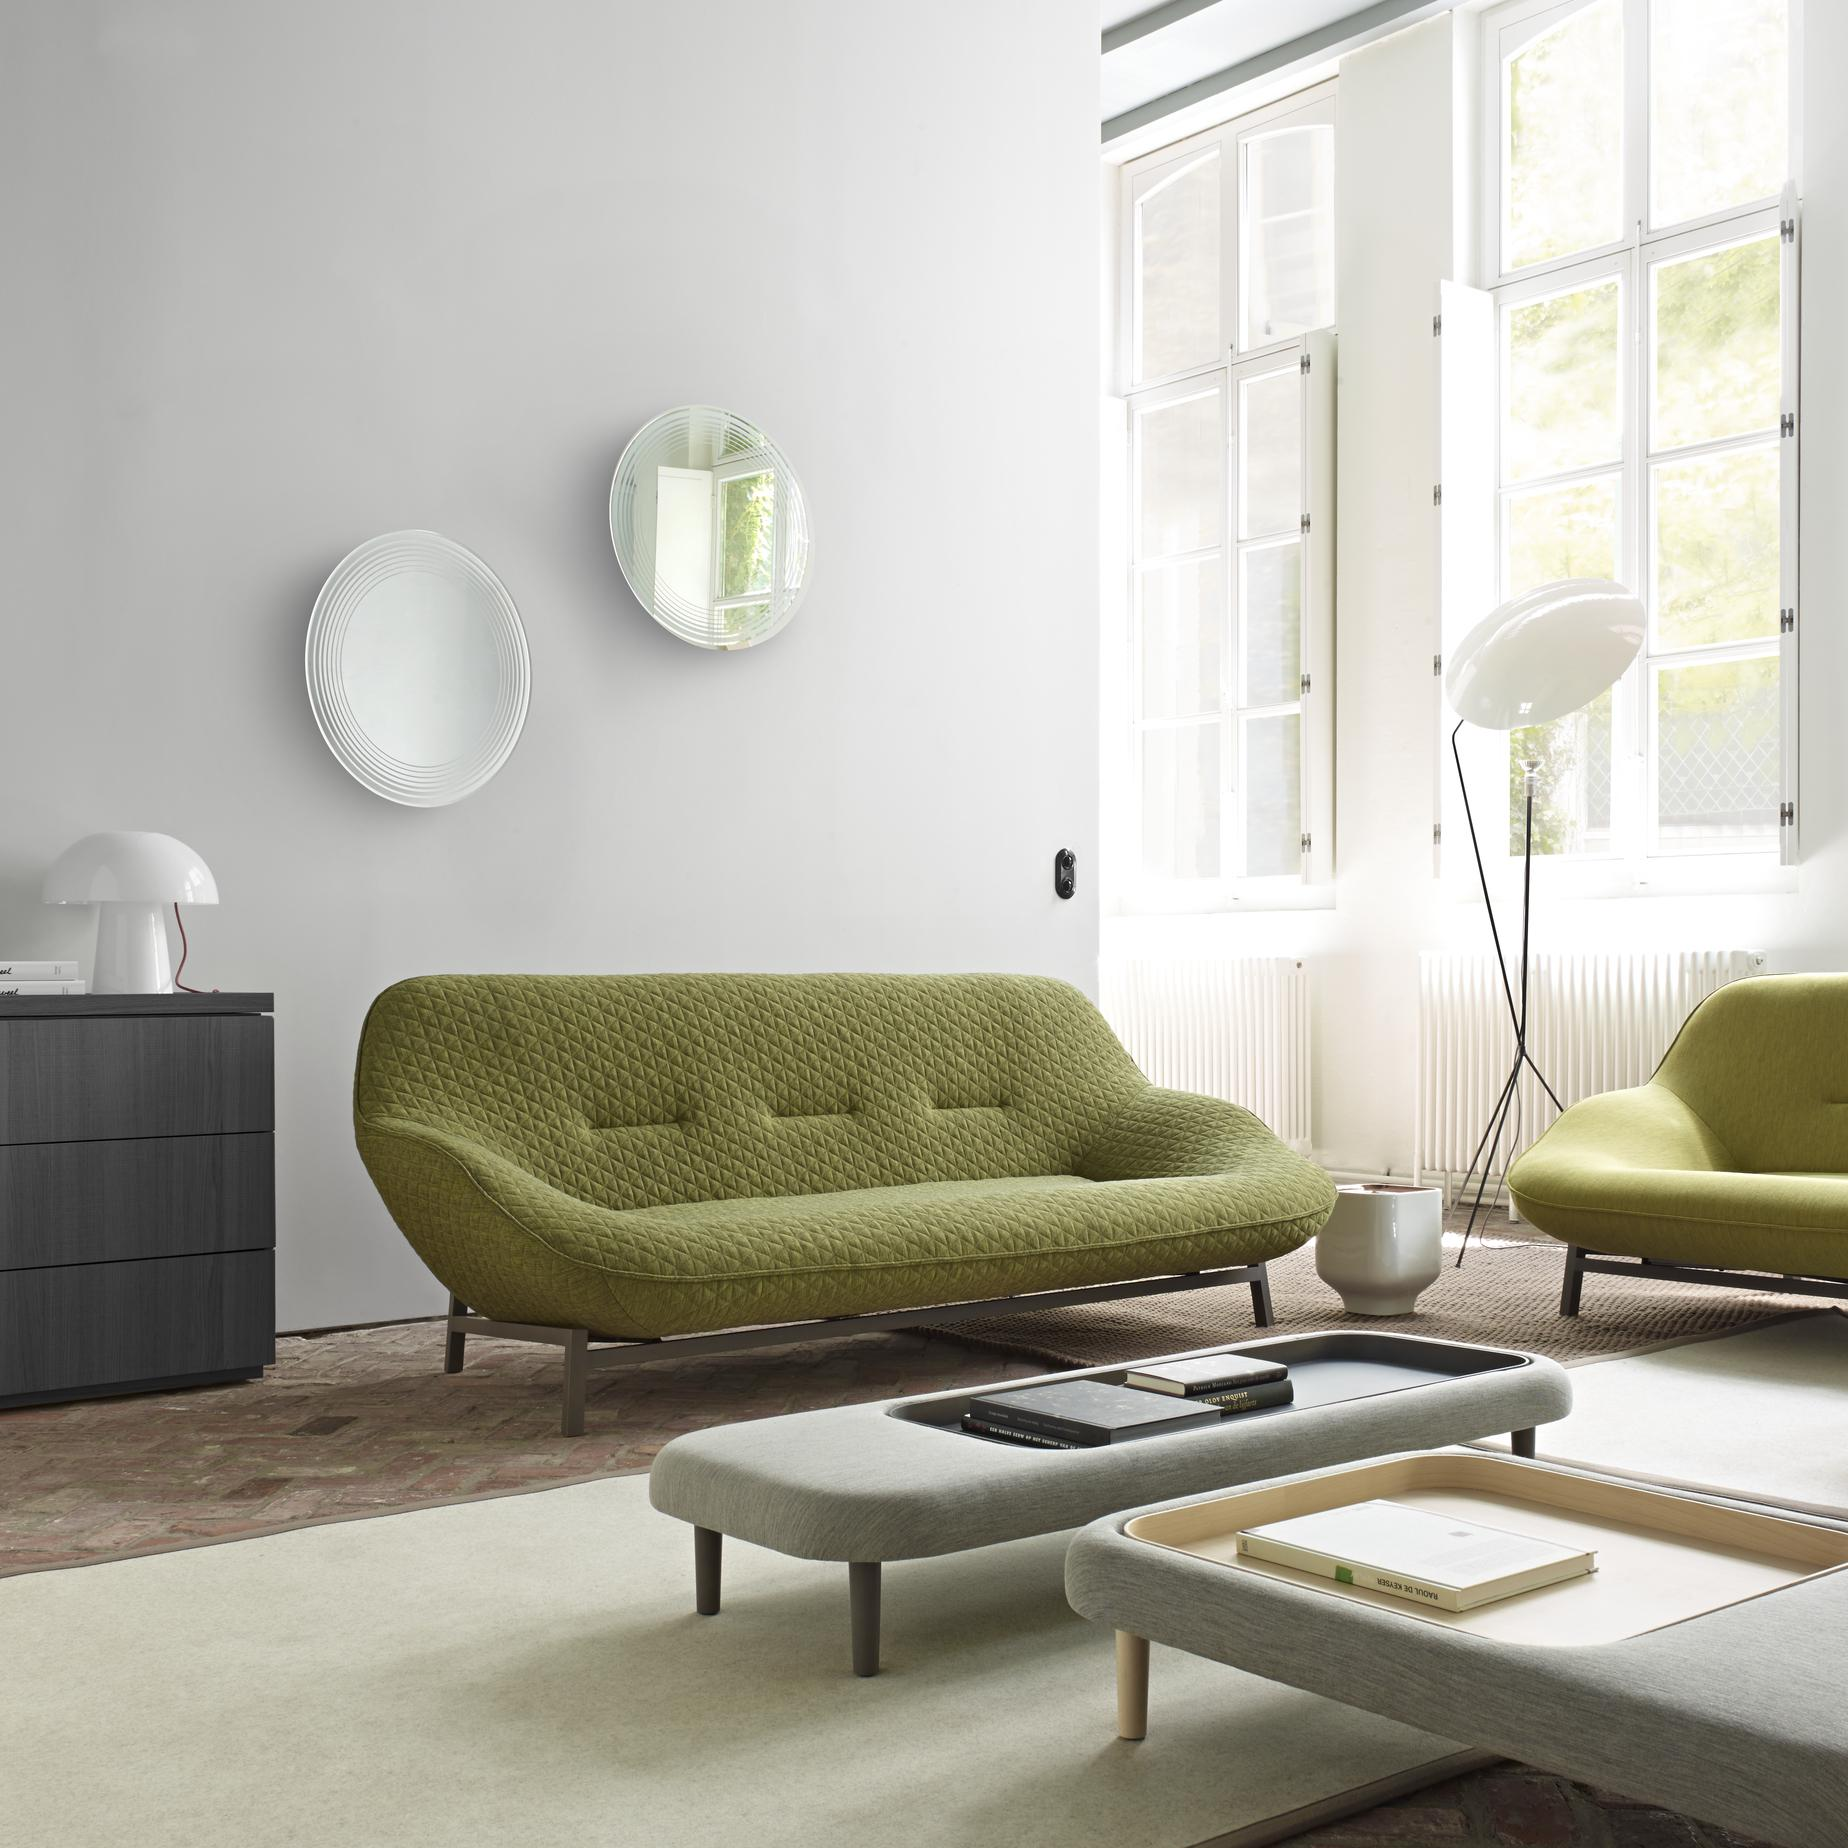 cosse sofas from designer philippe nigro ligne roset official site. Black Bedroom Furniture Sets. Home Design Ideas